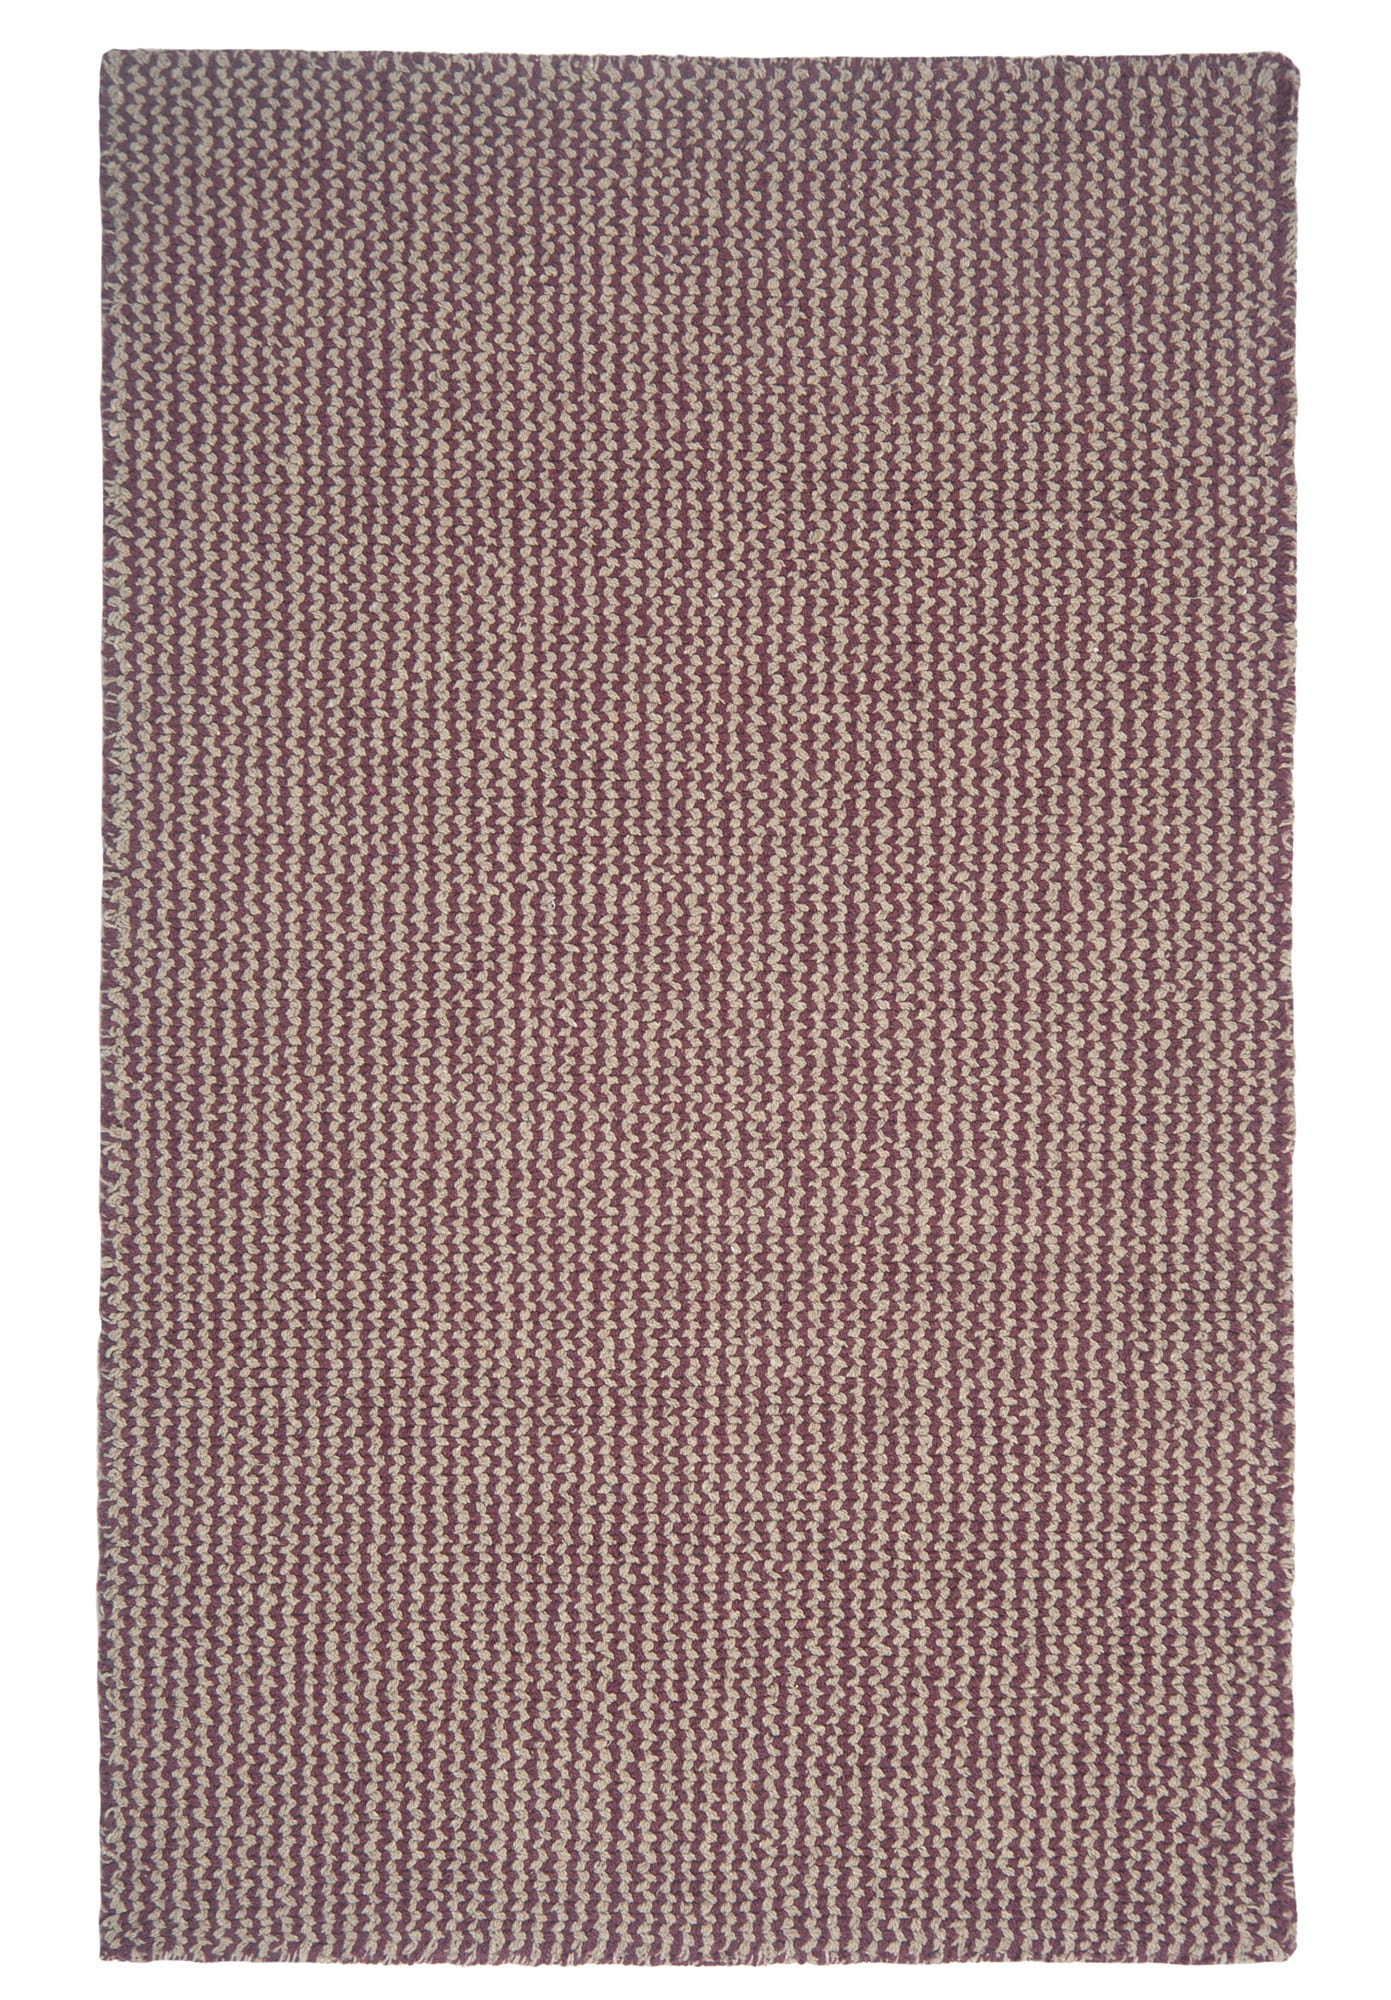 Crossweave Taupe Red Eco Cotton Loom Hooked Rug Hook Amp Loom